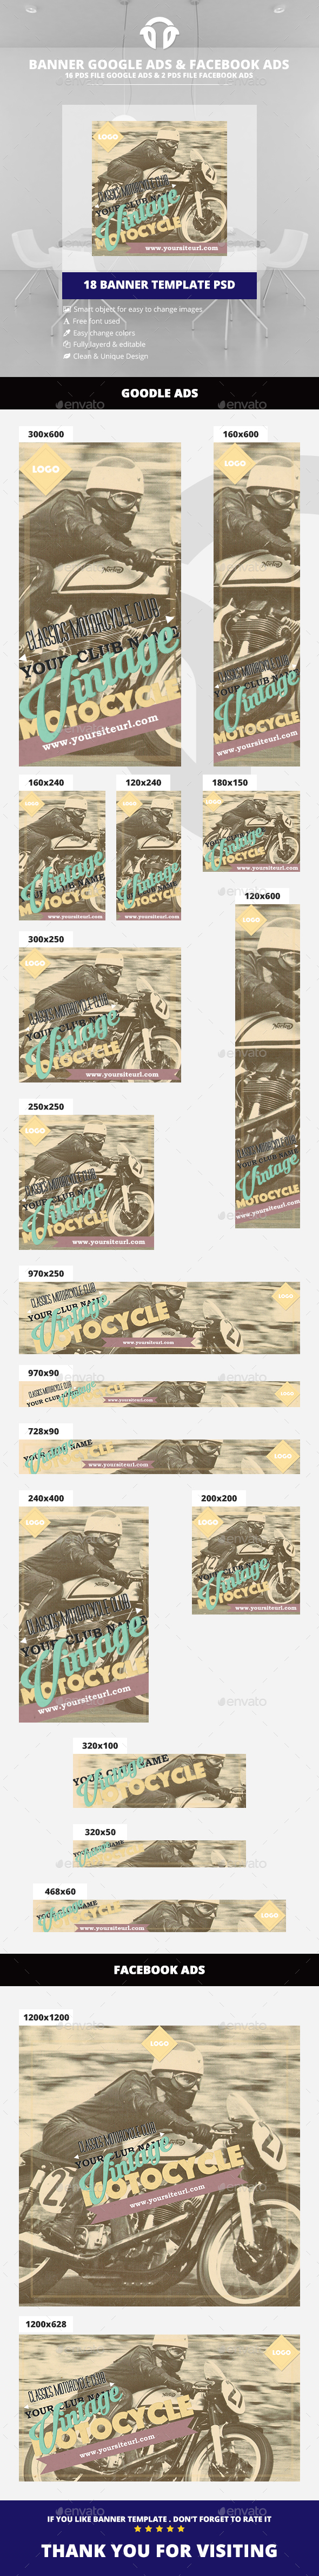 Retro / Vintage Multi-Clubs Ad - Banners & Ads Web Elements